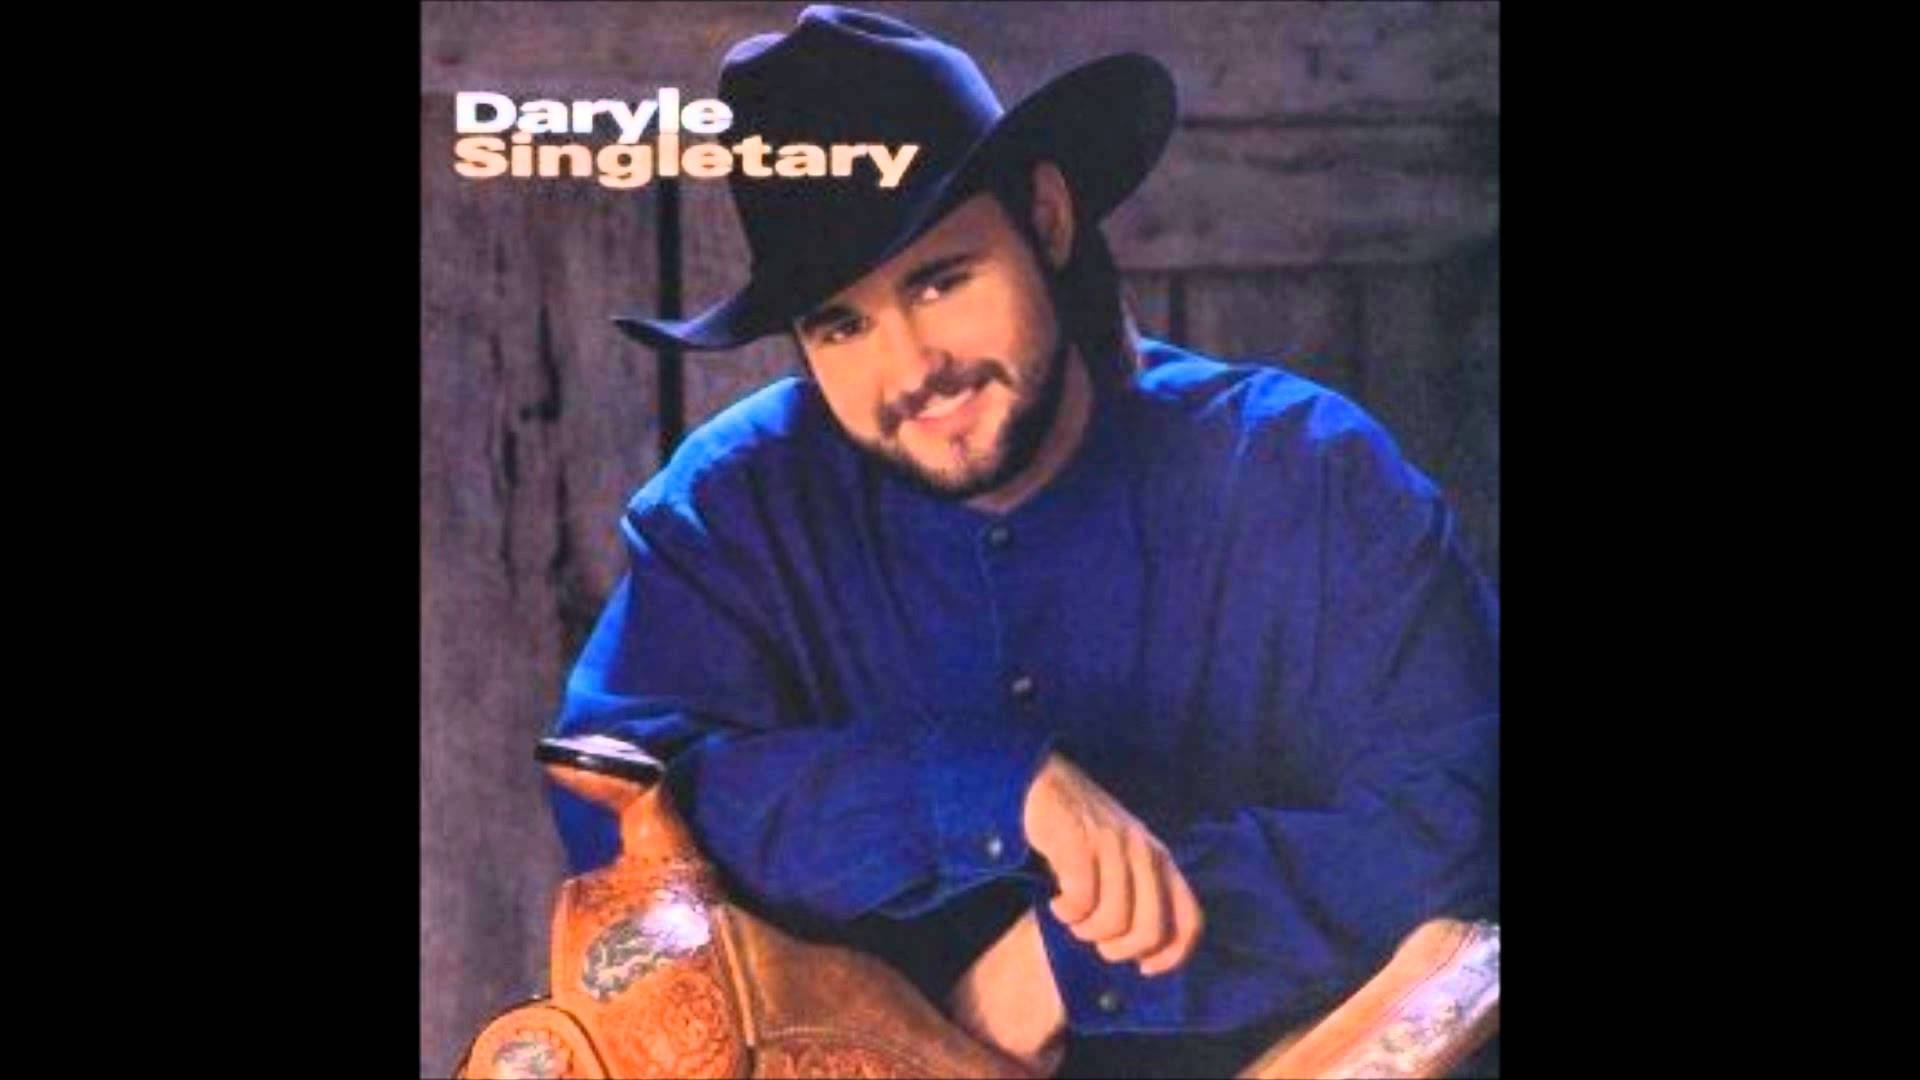 Daryle Singletary - I Let Her Lie - YouTube